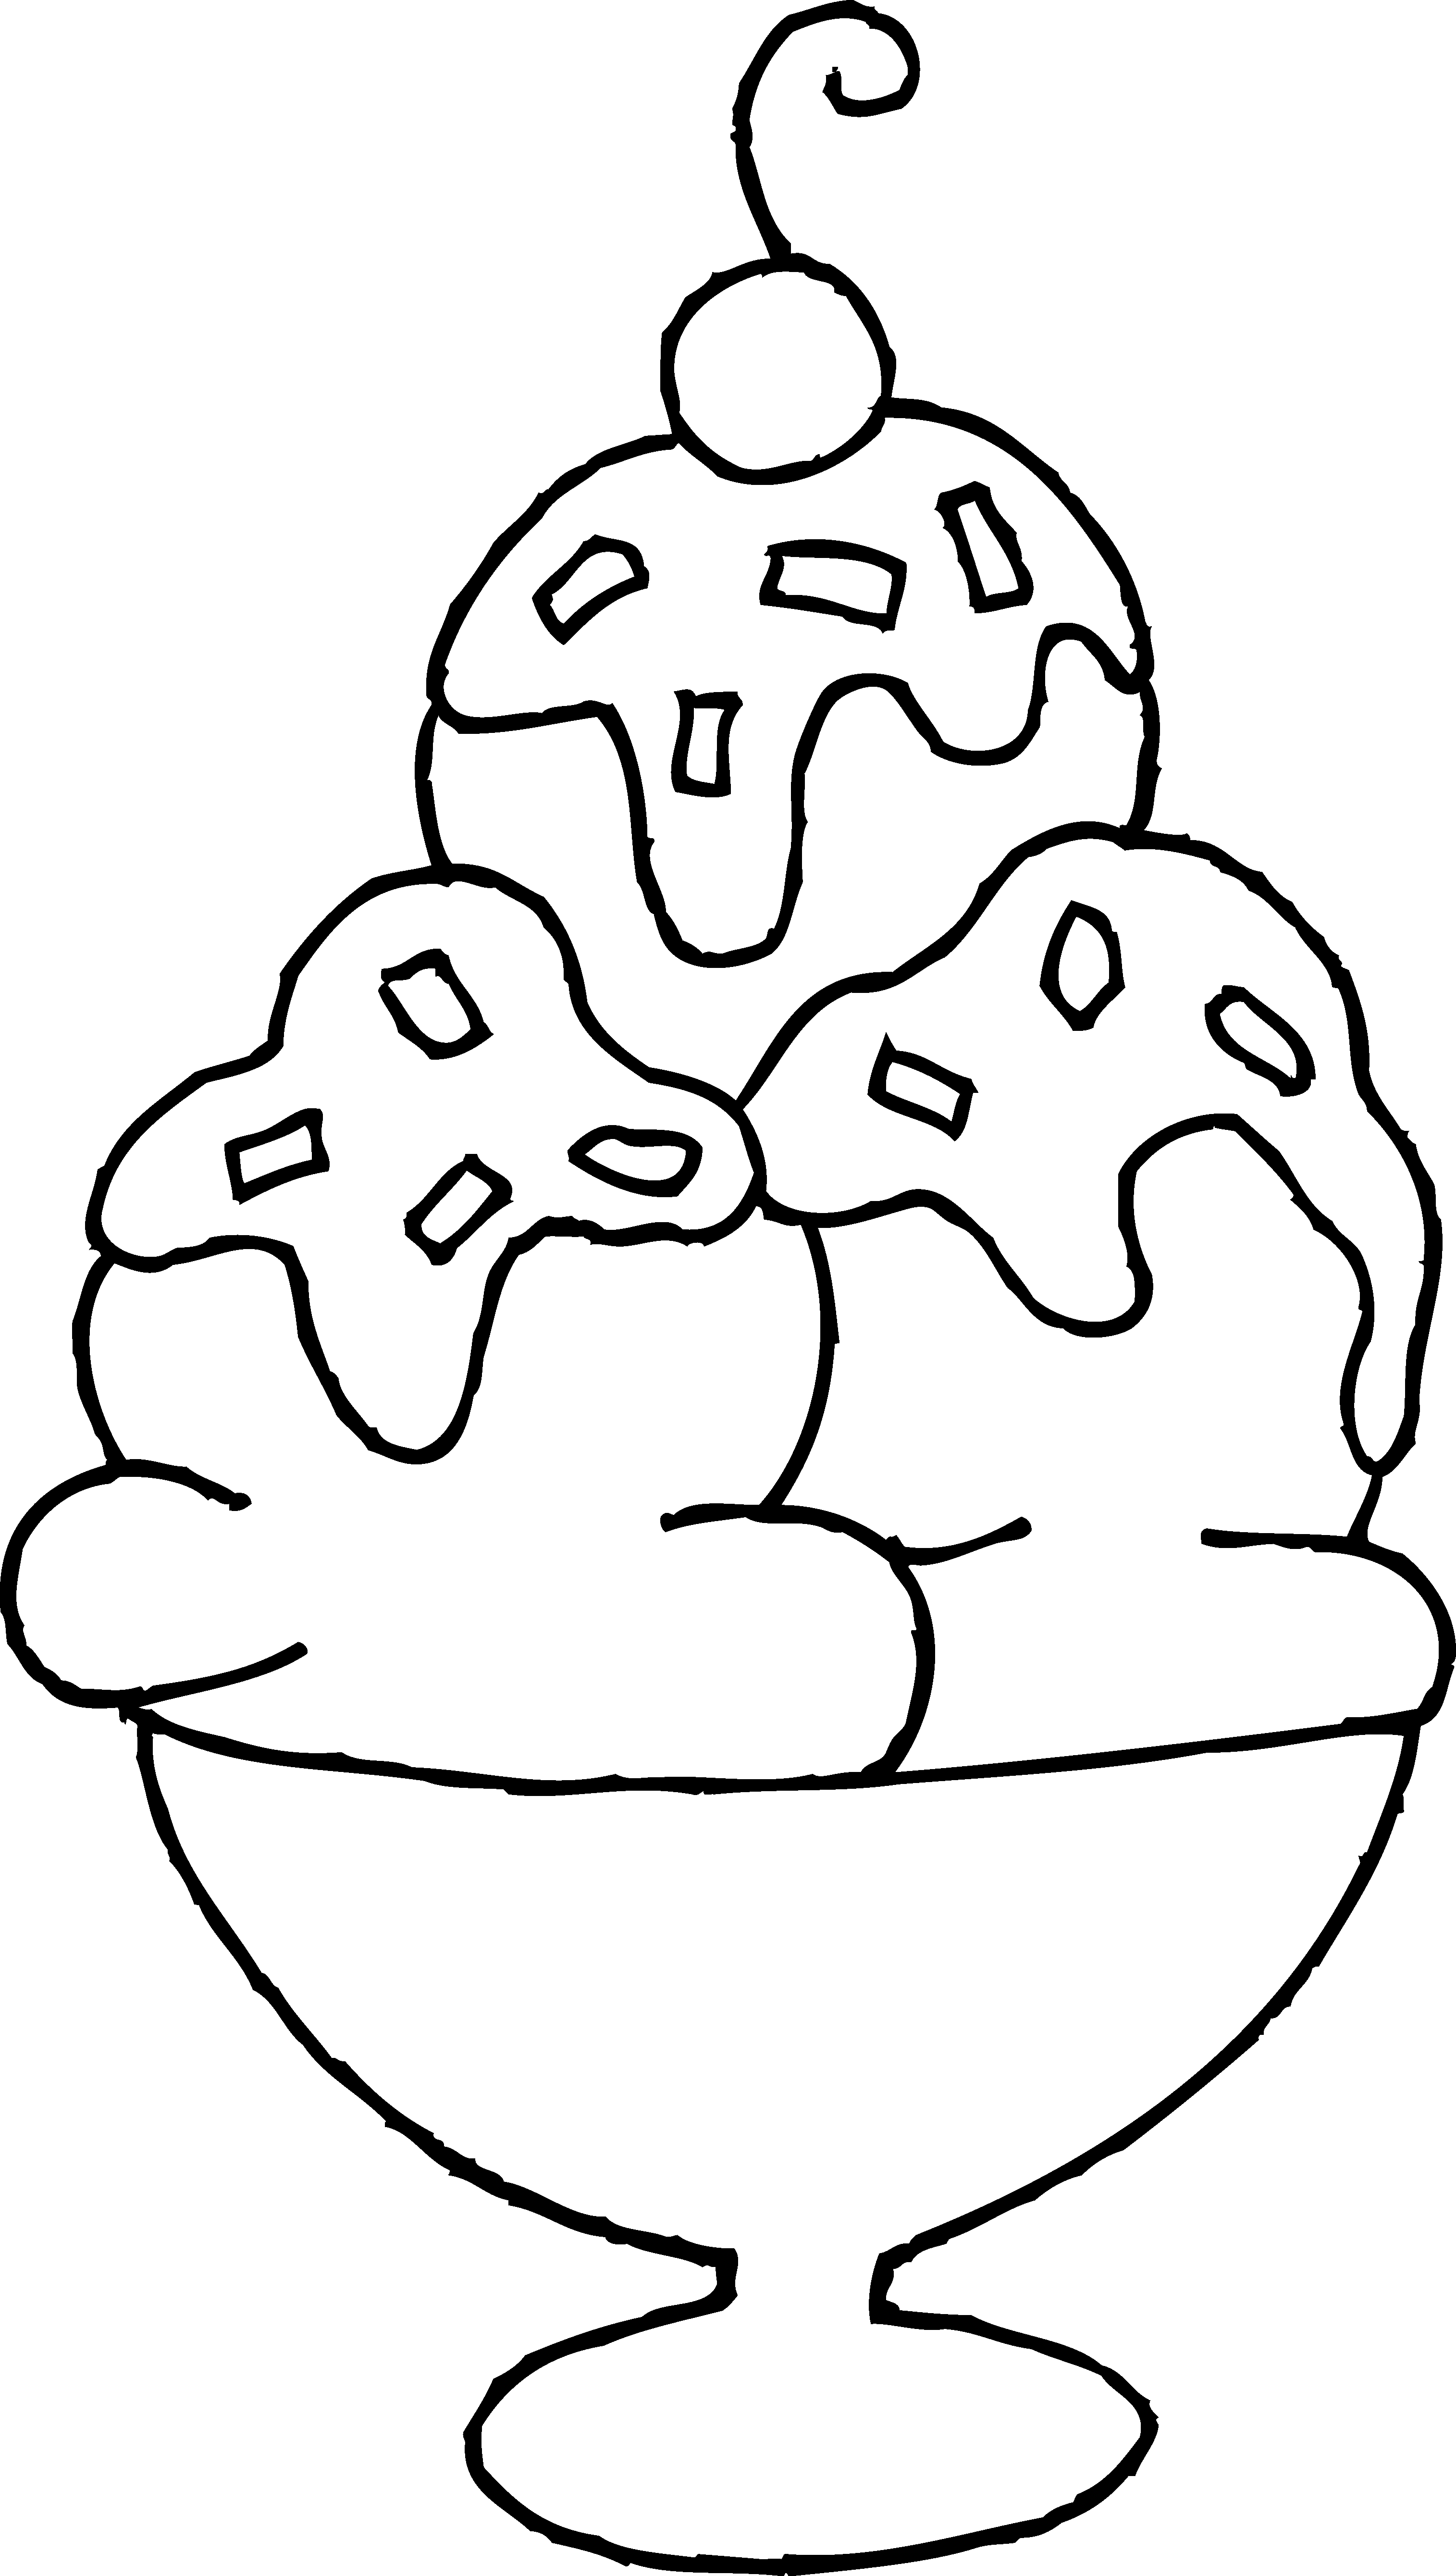 ice cream coloring book free printable ice cream coloring pages for kids book coloring ice cream